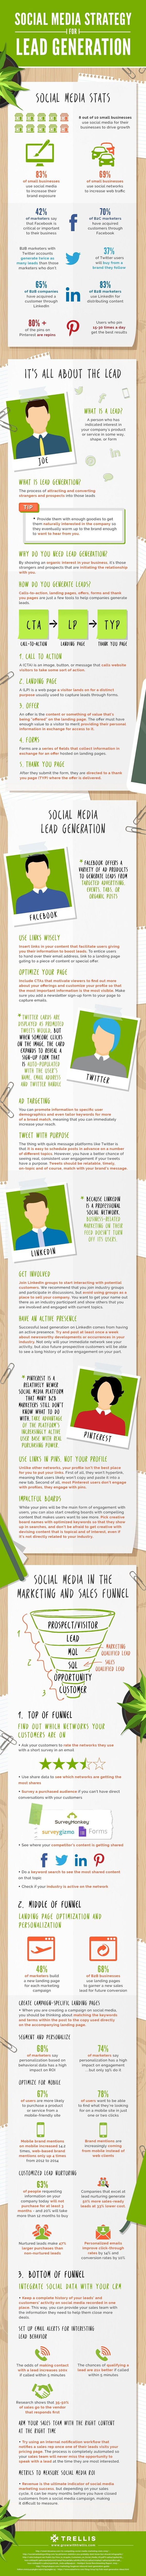 This infographic illustrates some quick facts, statistics, and explanations on how social media marketing strategy can make or break your company's lead generation and when it's best to use each. | How to get more out of your social media strategies for Facebook, Twitter, Instagram, Google+, and LinkedIn. |